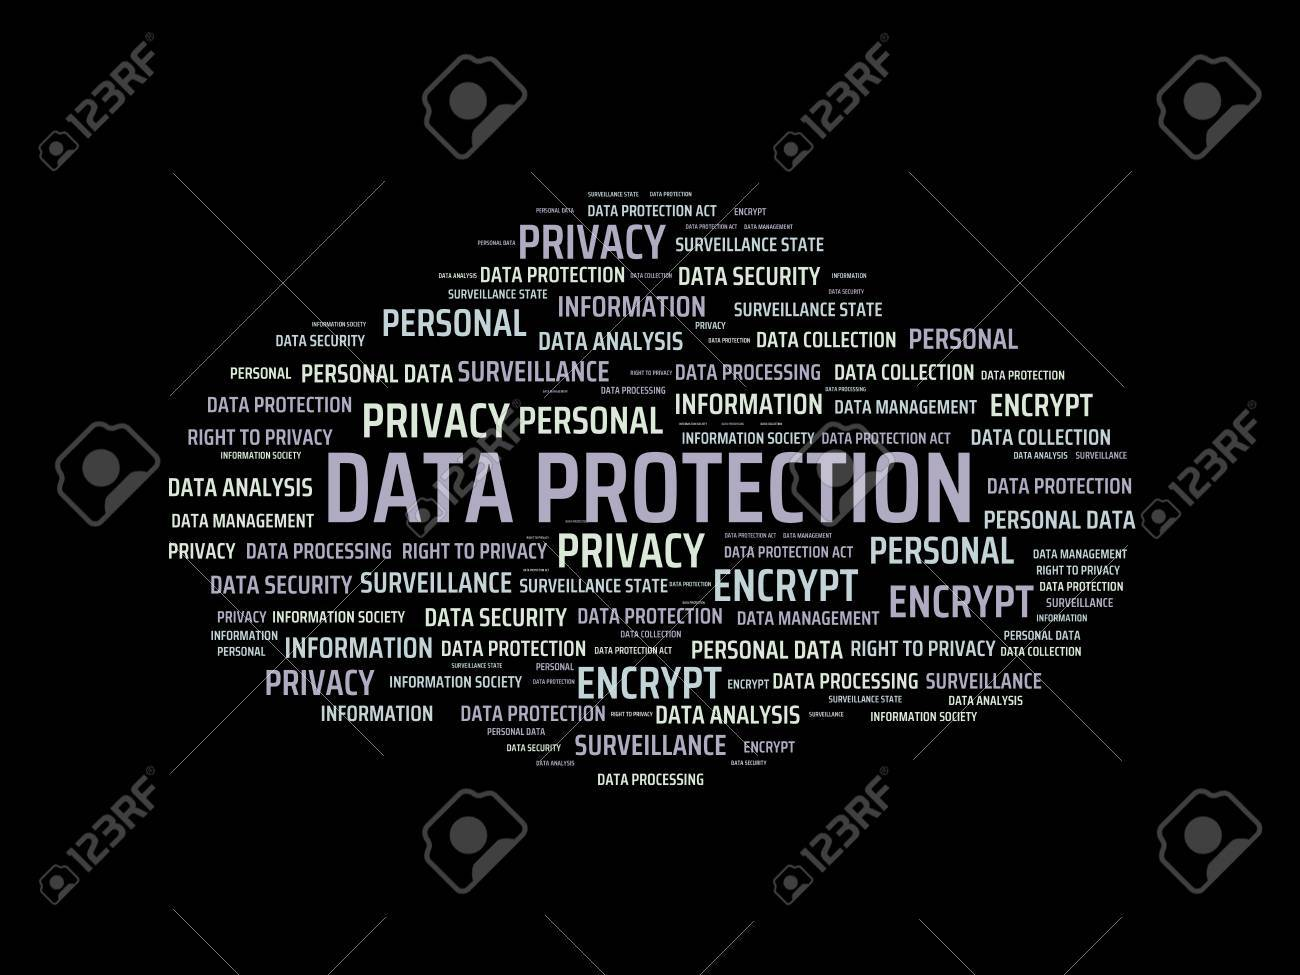 Data Protection Image With Words Associated With The Topic Stock